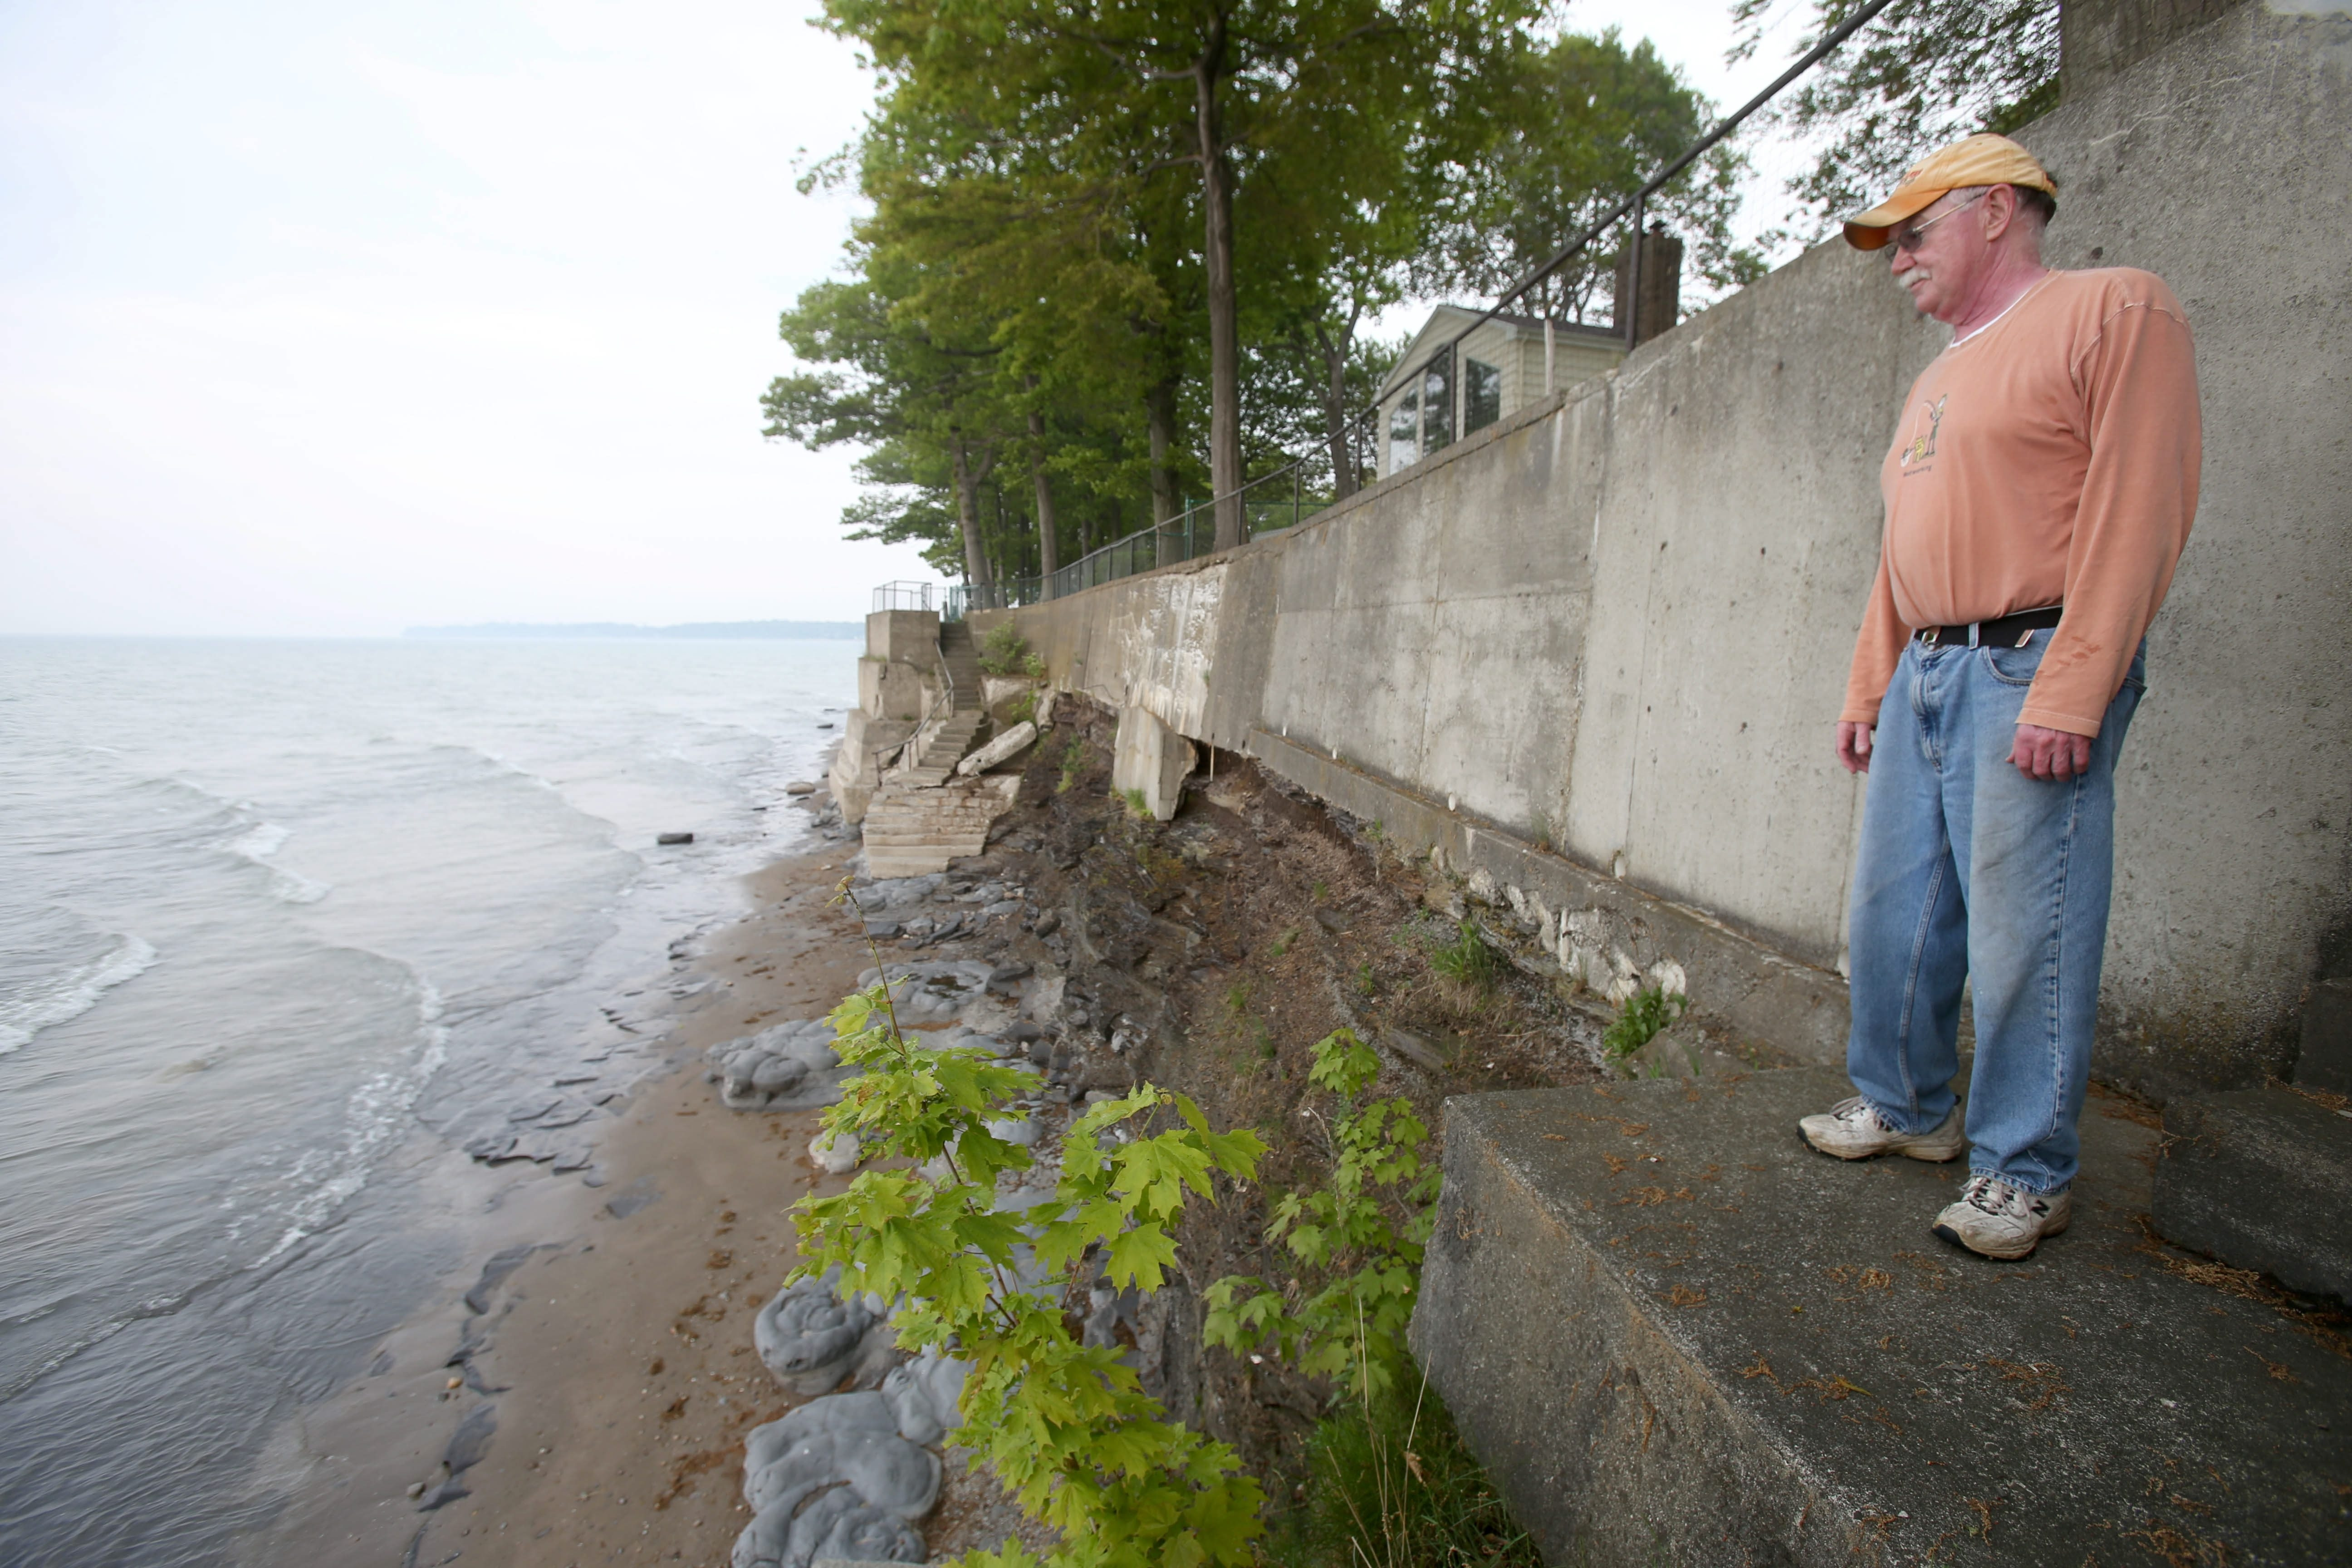 Richard Mayer looks at Lake Erie from his waterfront home in Angola. As a recreational fisherman, he has to be more careful with his boat, but he doesn't mind having a larger beach.